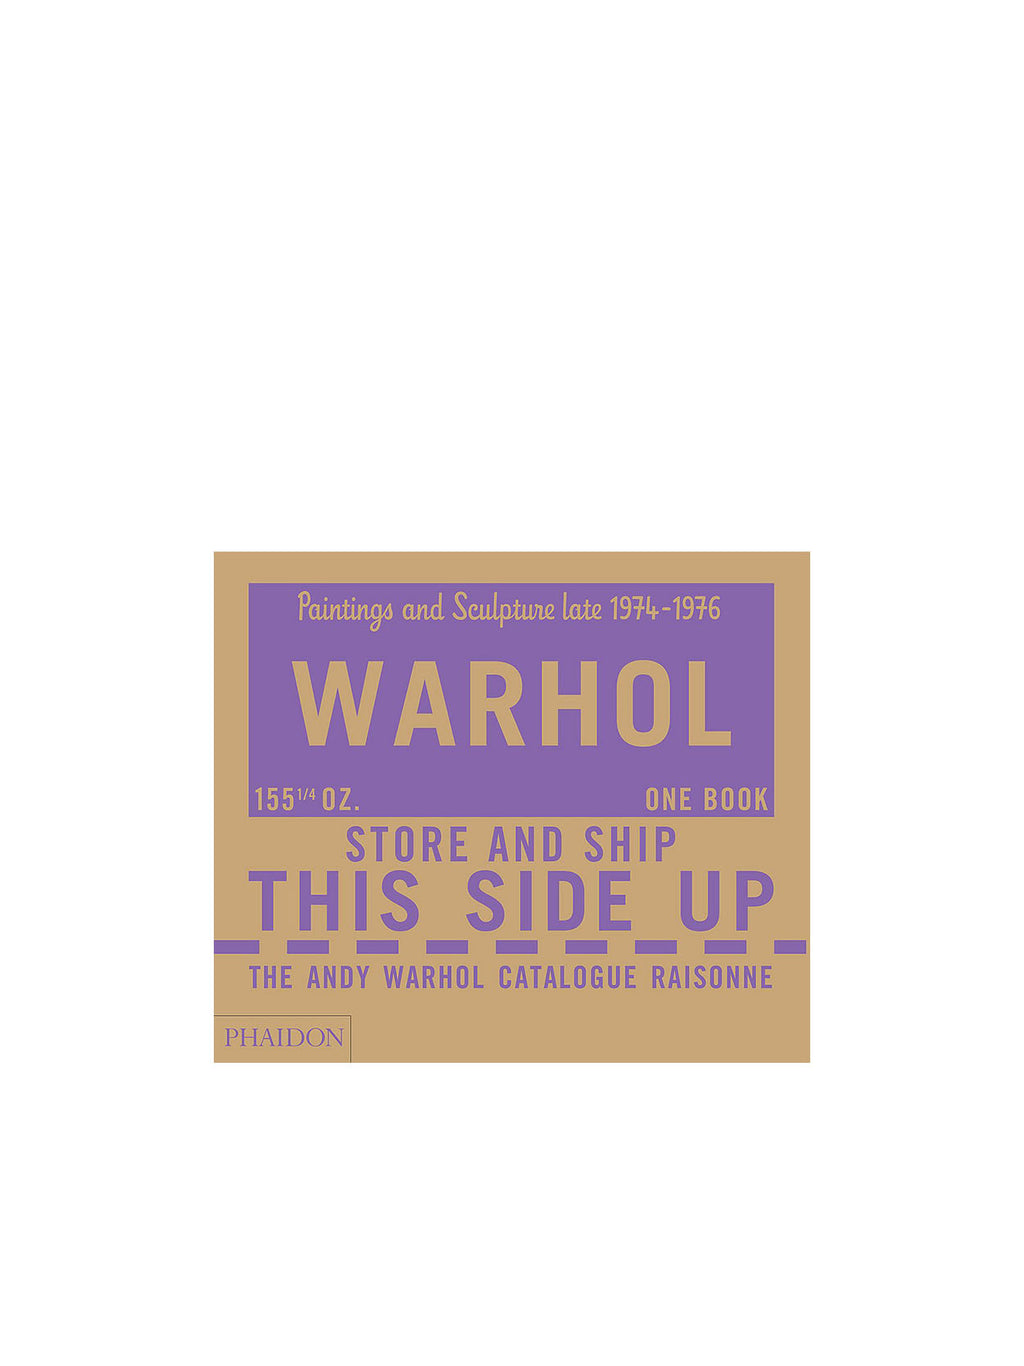 The Andy Warhol Catalogue Raisonne, Paintings and Sculpture late 1974-1976